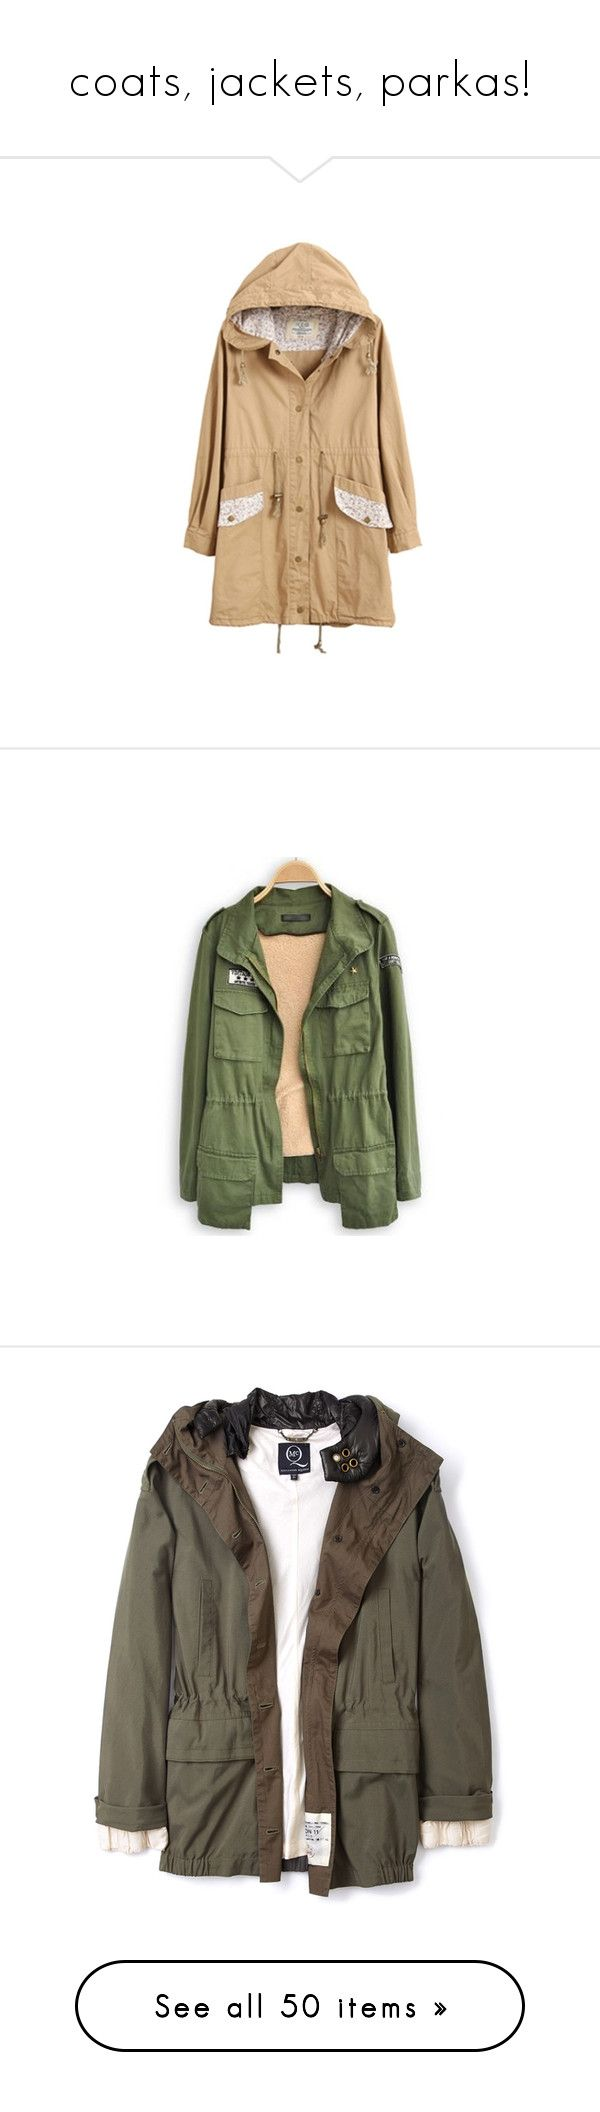 """""""coats, jackets, parkas!"""" by karm-a ❤ liked on Polyvore featuring outerwear, coats, jackets, coats & jackets, hooded trench coats, beige coat, hooded trench, tops, green and long lapel coat"""